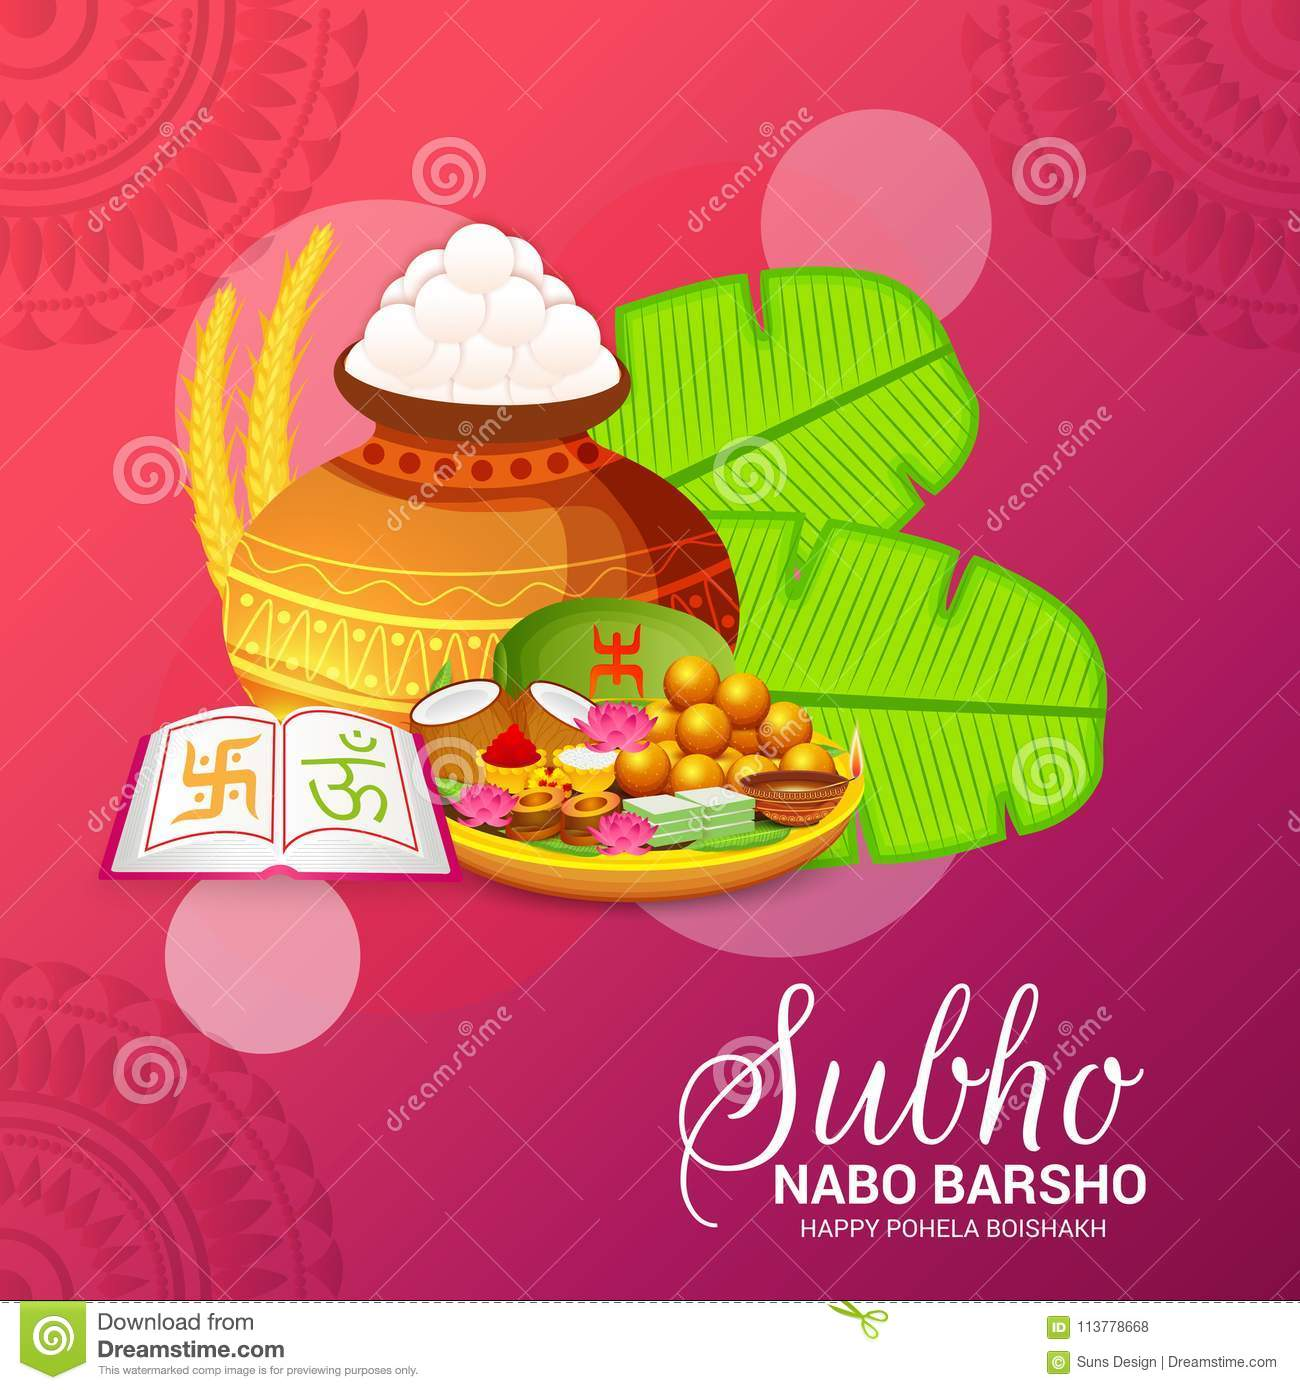 Bengali new year subho nabo barshohappy pohela boishakh a mud pot download bengali new year subho nabo barshohappy pohela boishakh a mud pot fill with rasgulla m4hsunfo